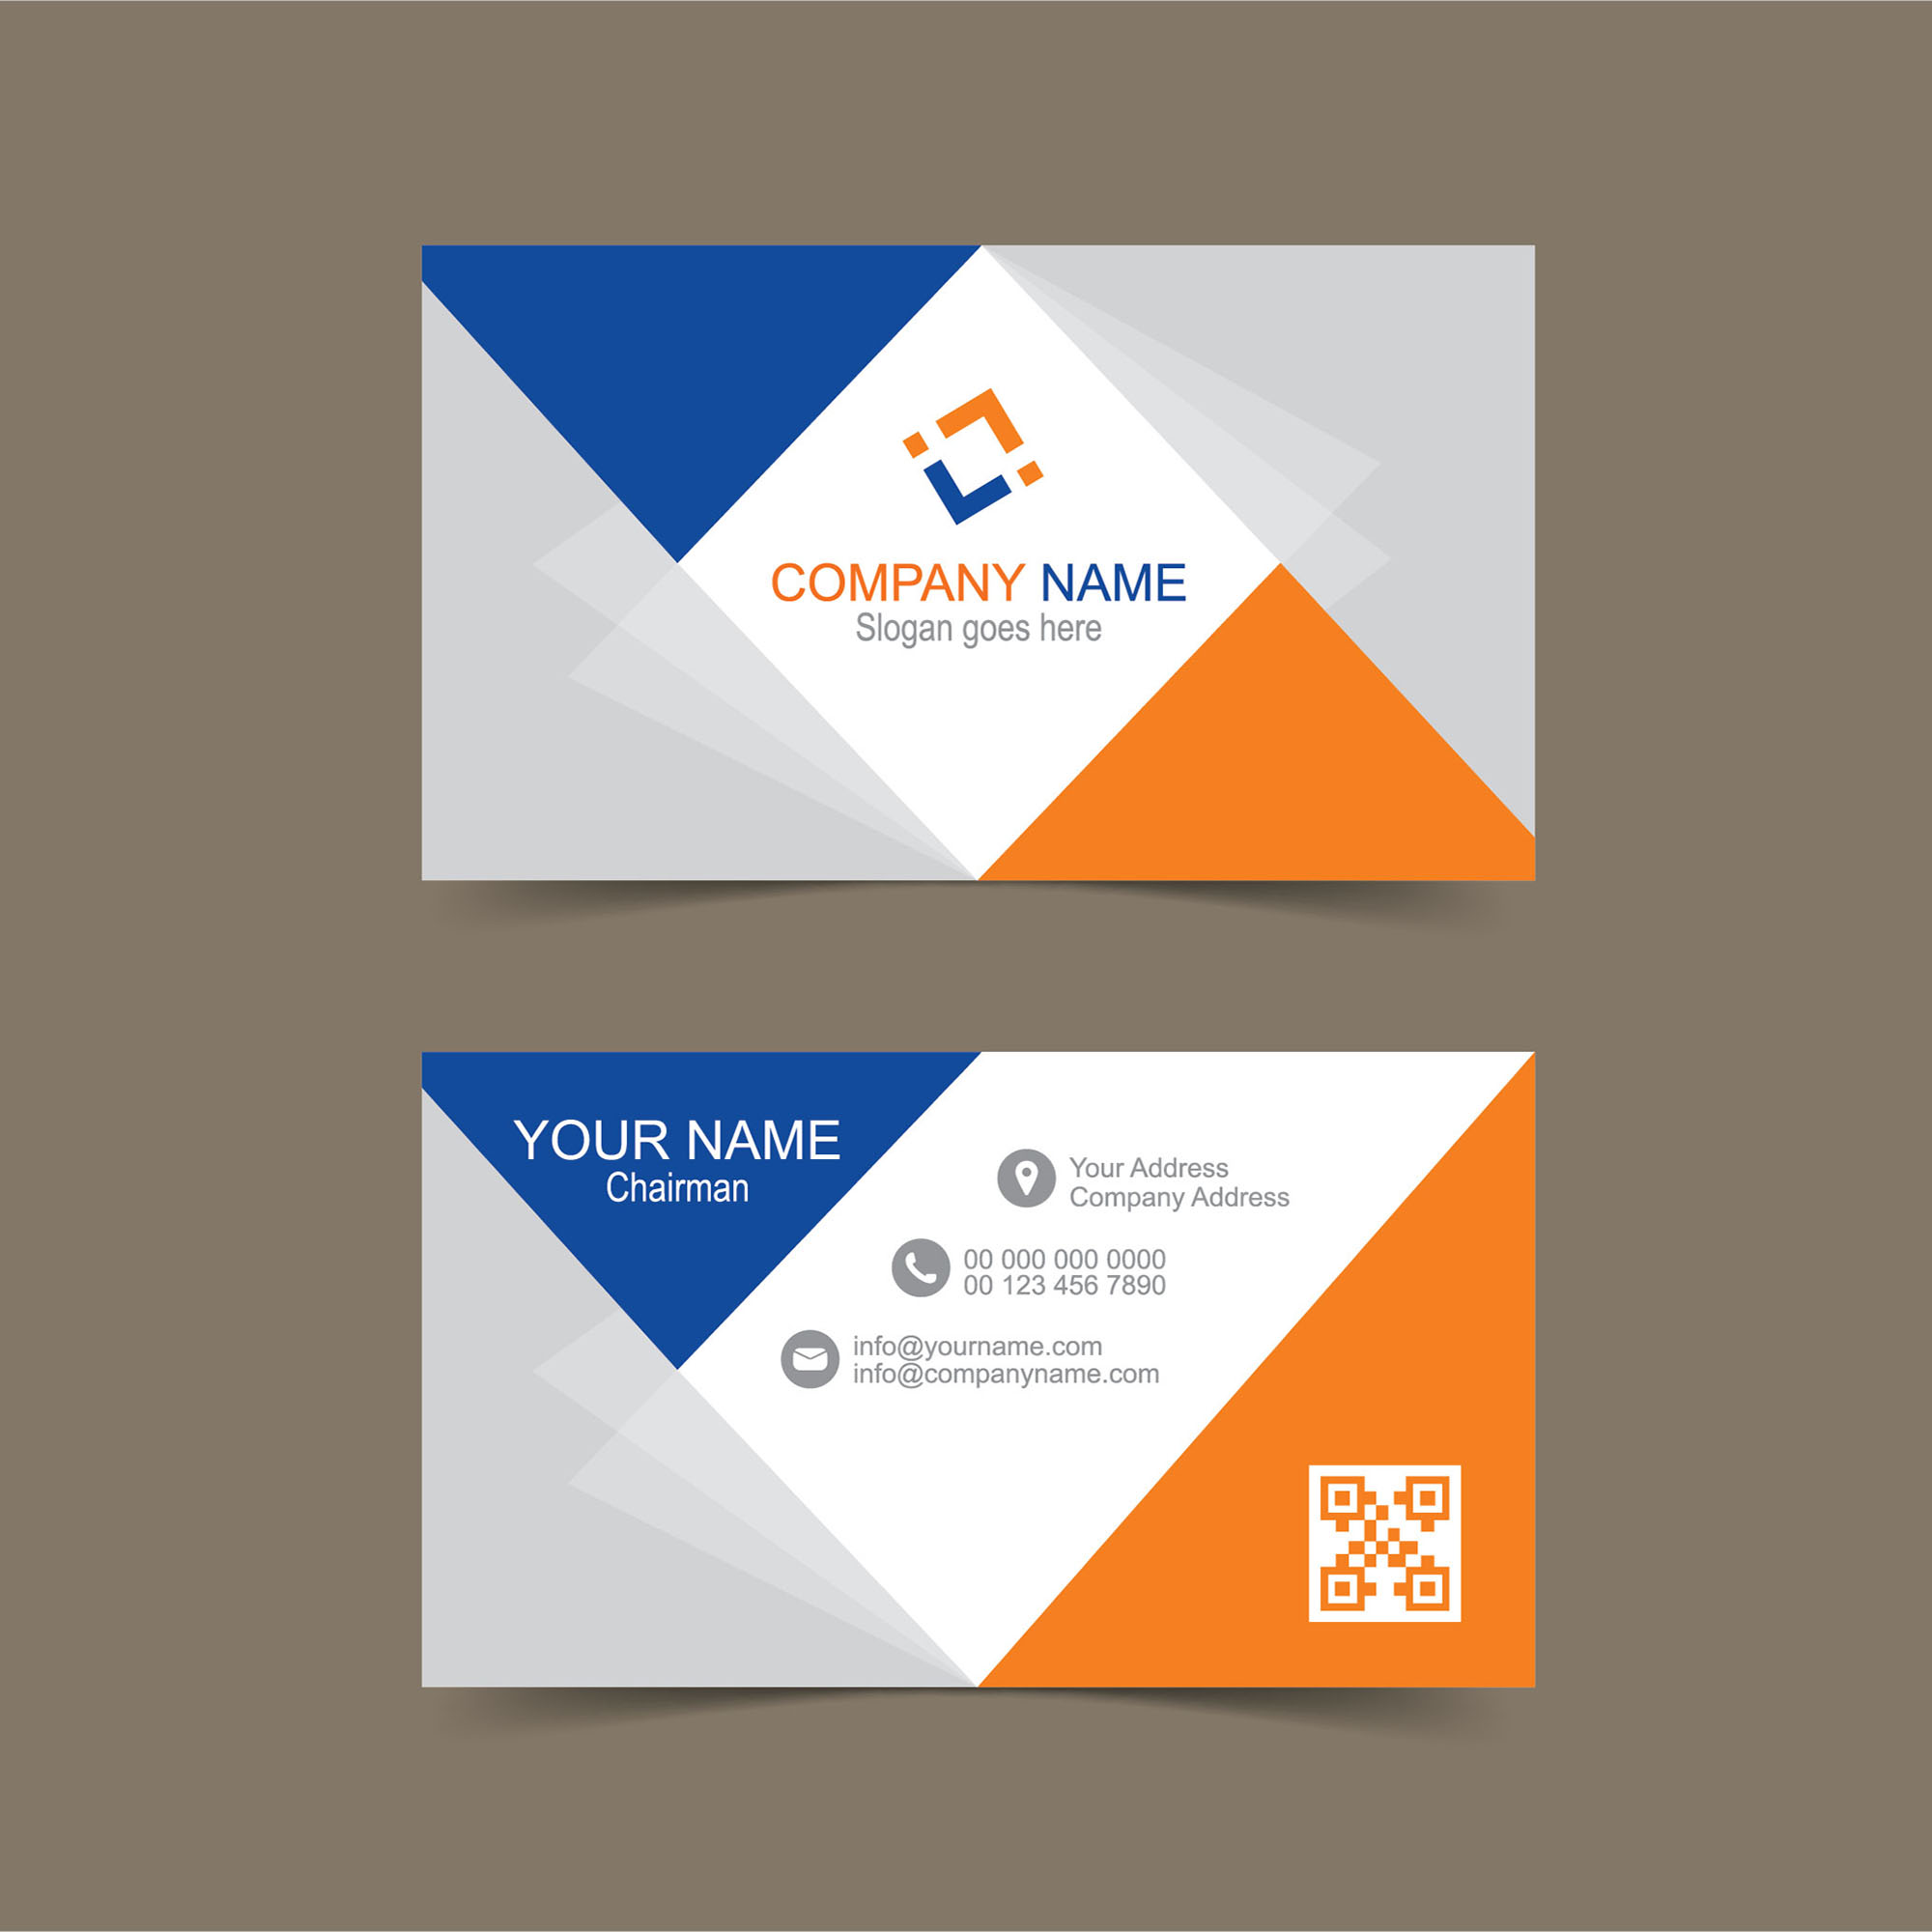 Free Business Card Template For Illustrator Wisxicom - Business card templates designs